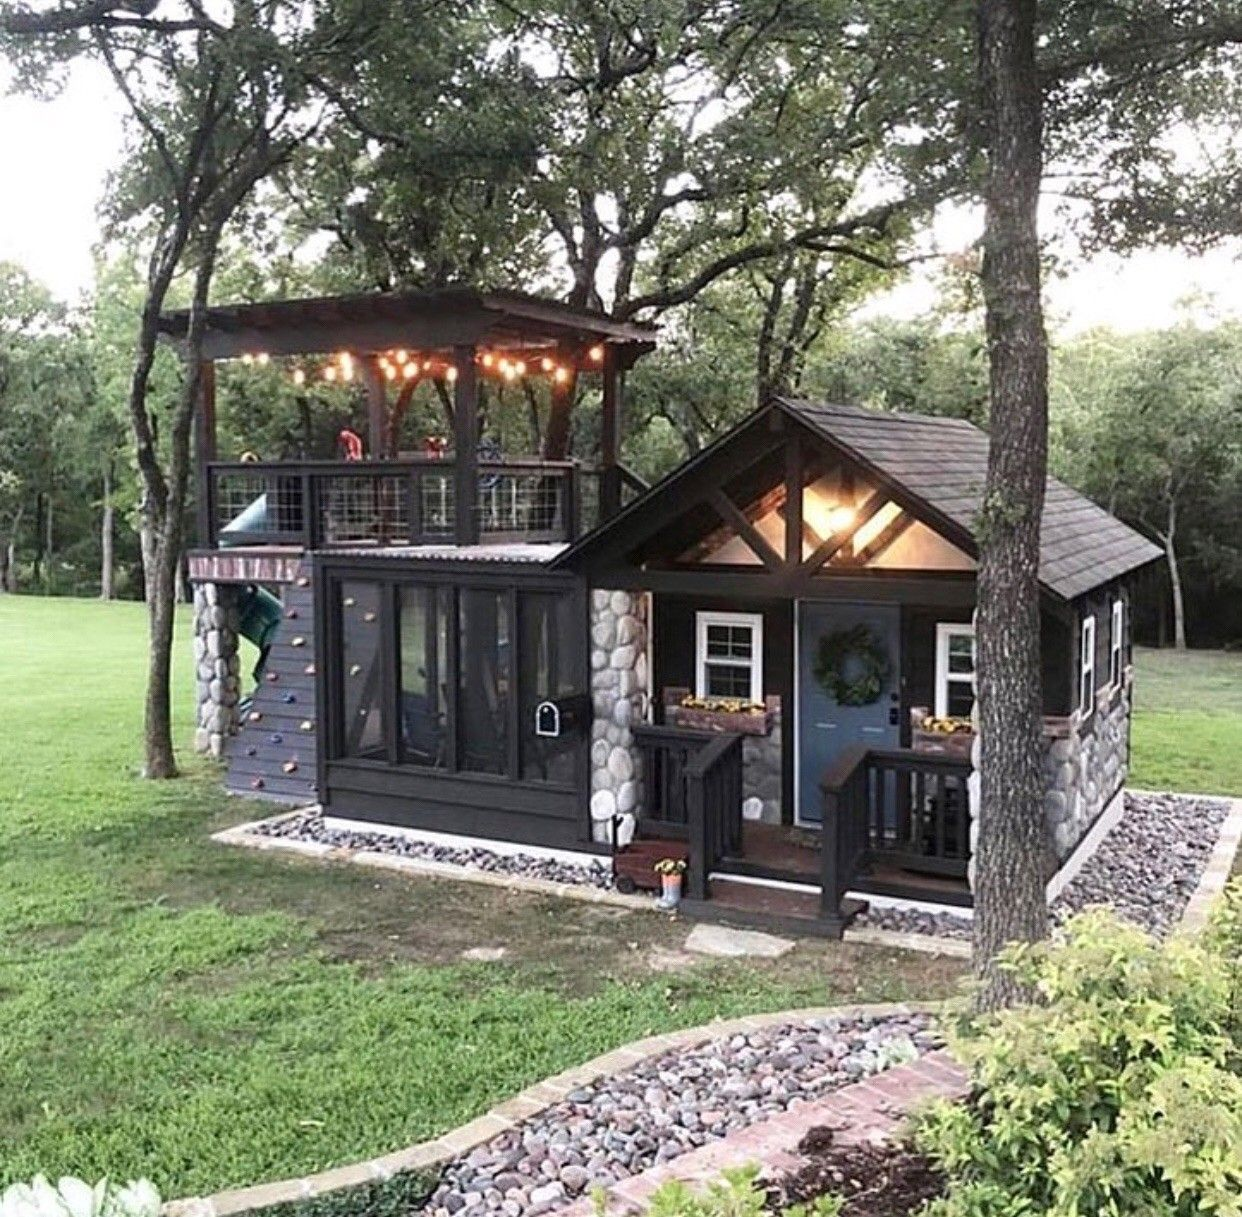 Architecture Inspiration Home Exterior Photo Of Child S Luxury Playhouse By Grossman Design Build Small Dream Homes Tiny Cabins Tiny House Design